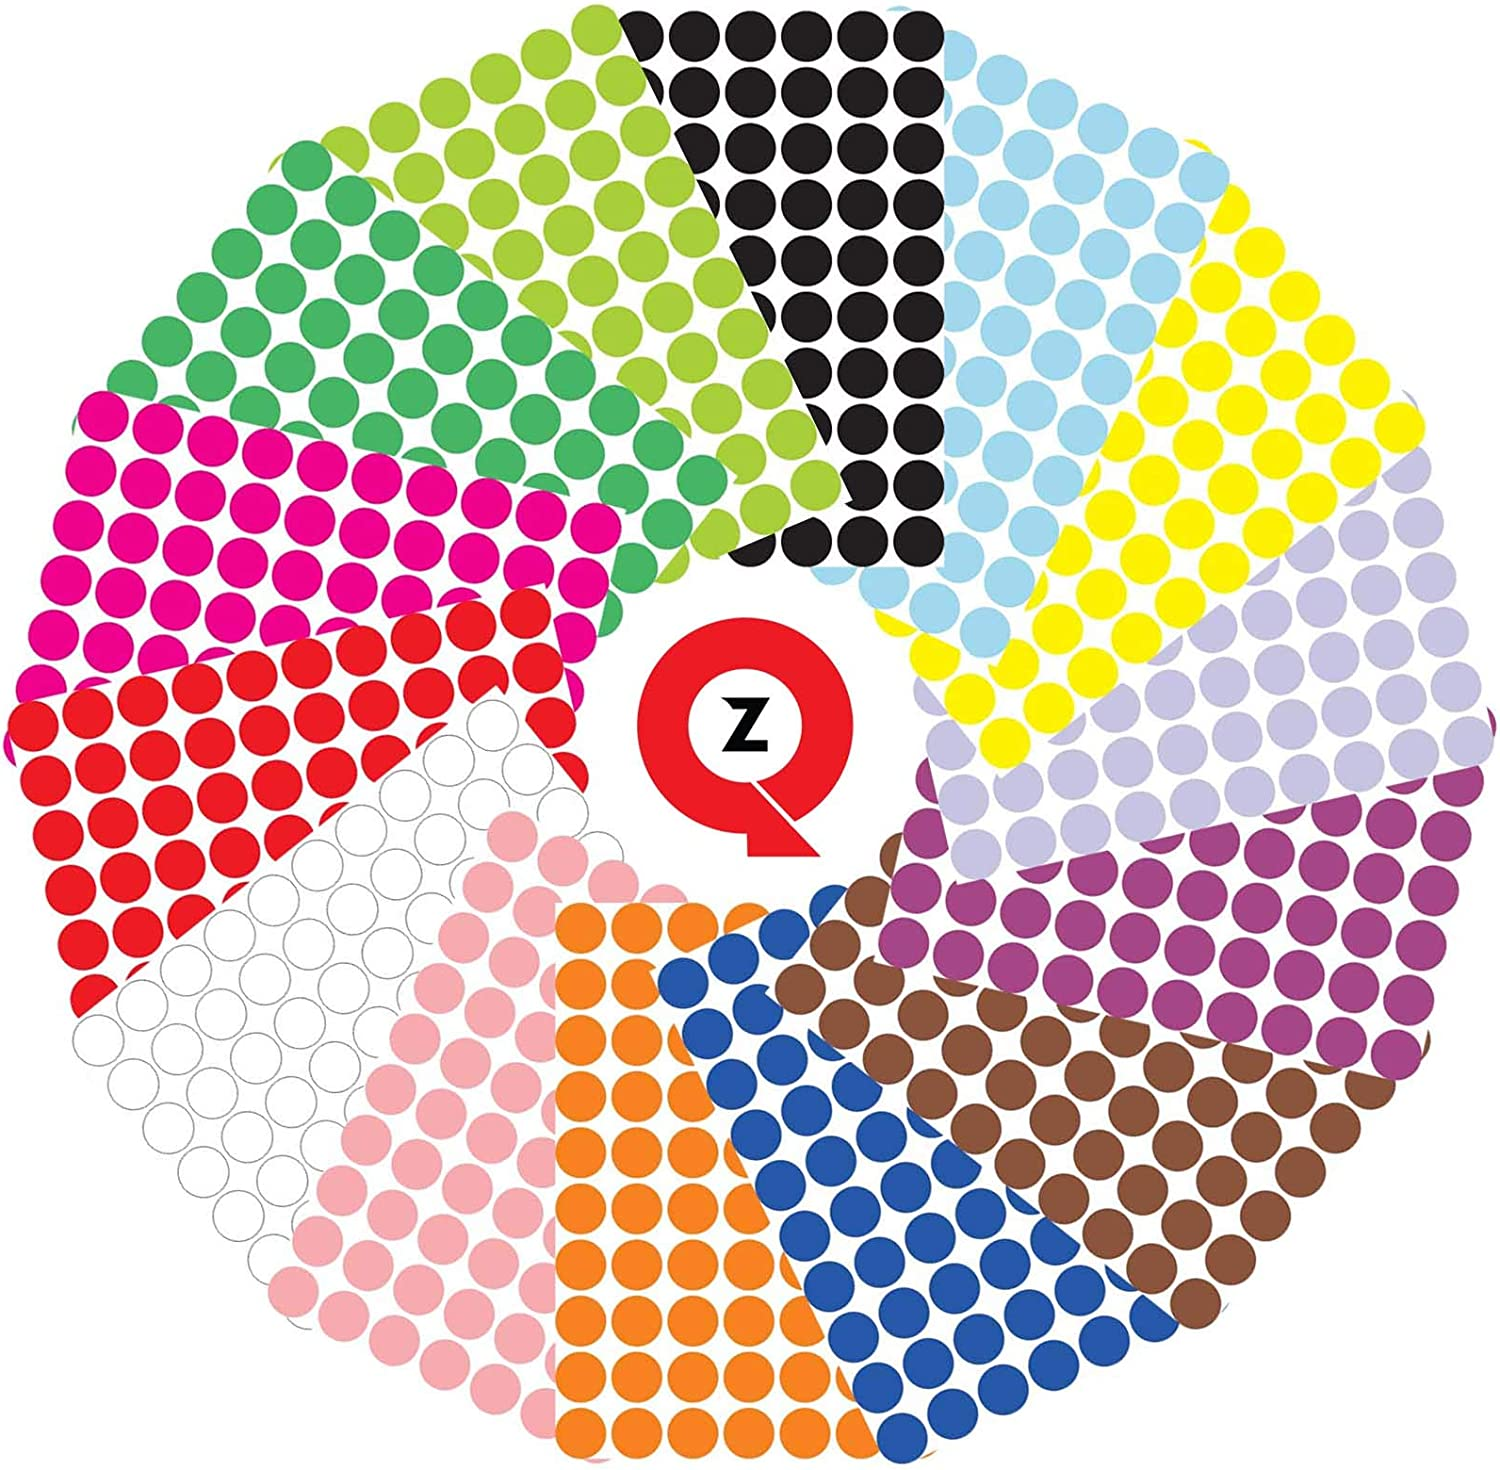 Quzi Dot Stickers Pack of 3920 Sheets of Colored Sticky Round Stickers & Printable Circle Labels for Labeling Decorating Coding